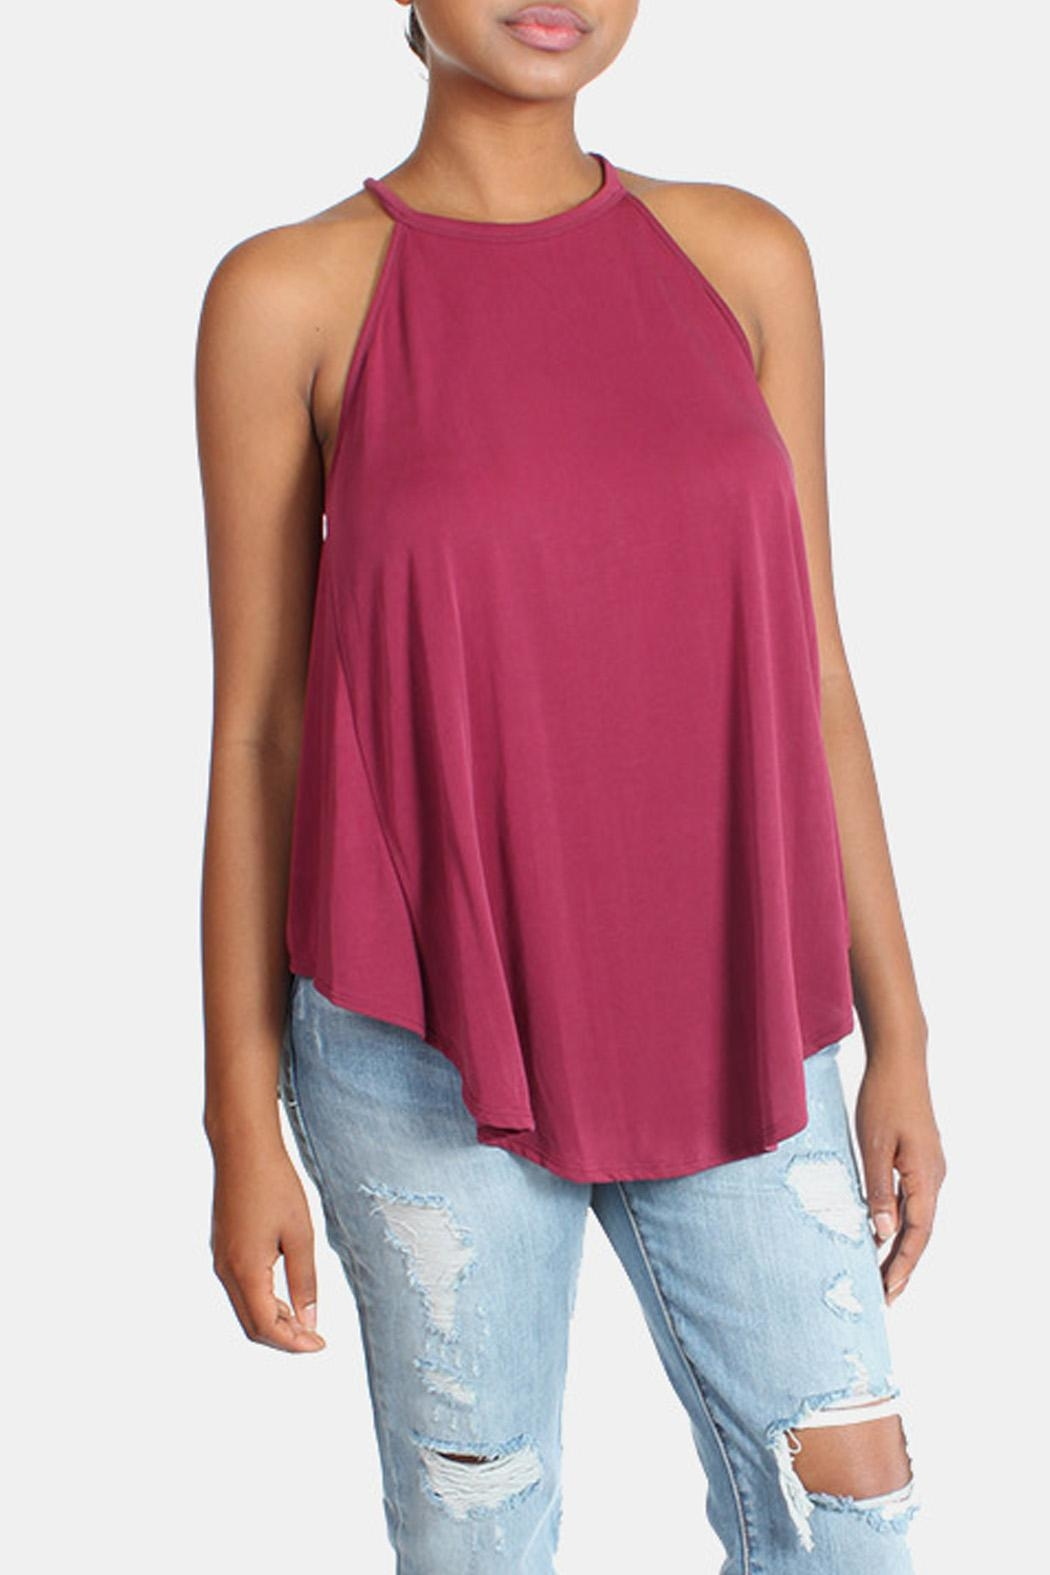 rokoko Ultra Soft Camisole Tunic - Side Cropped Image